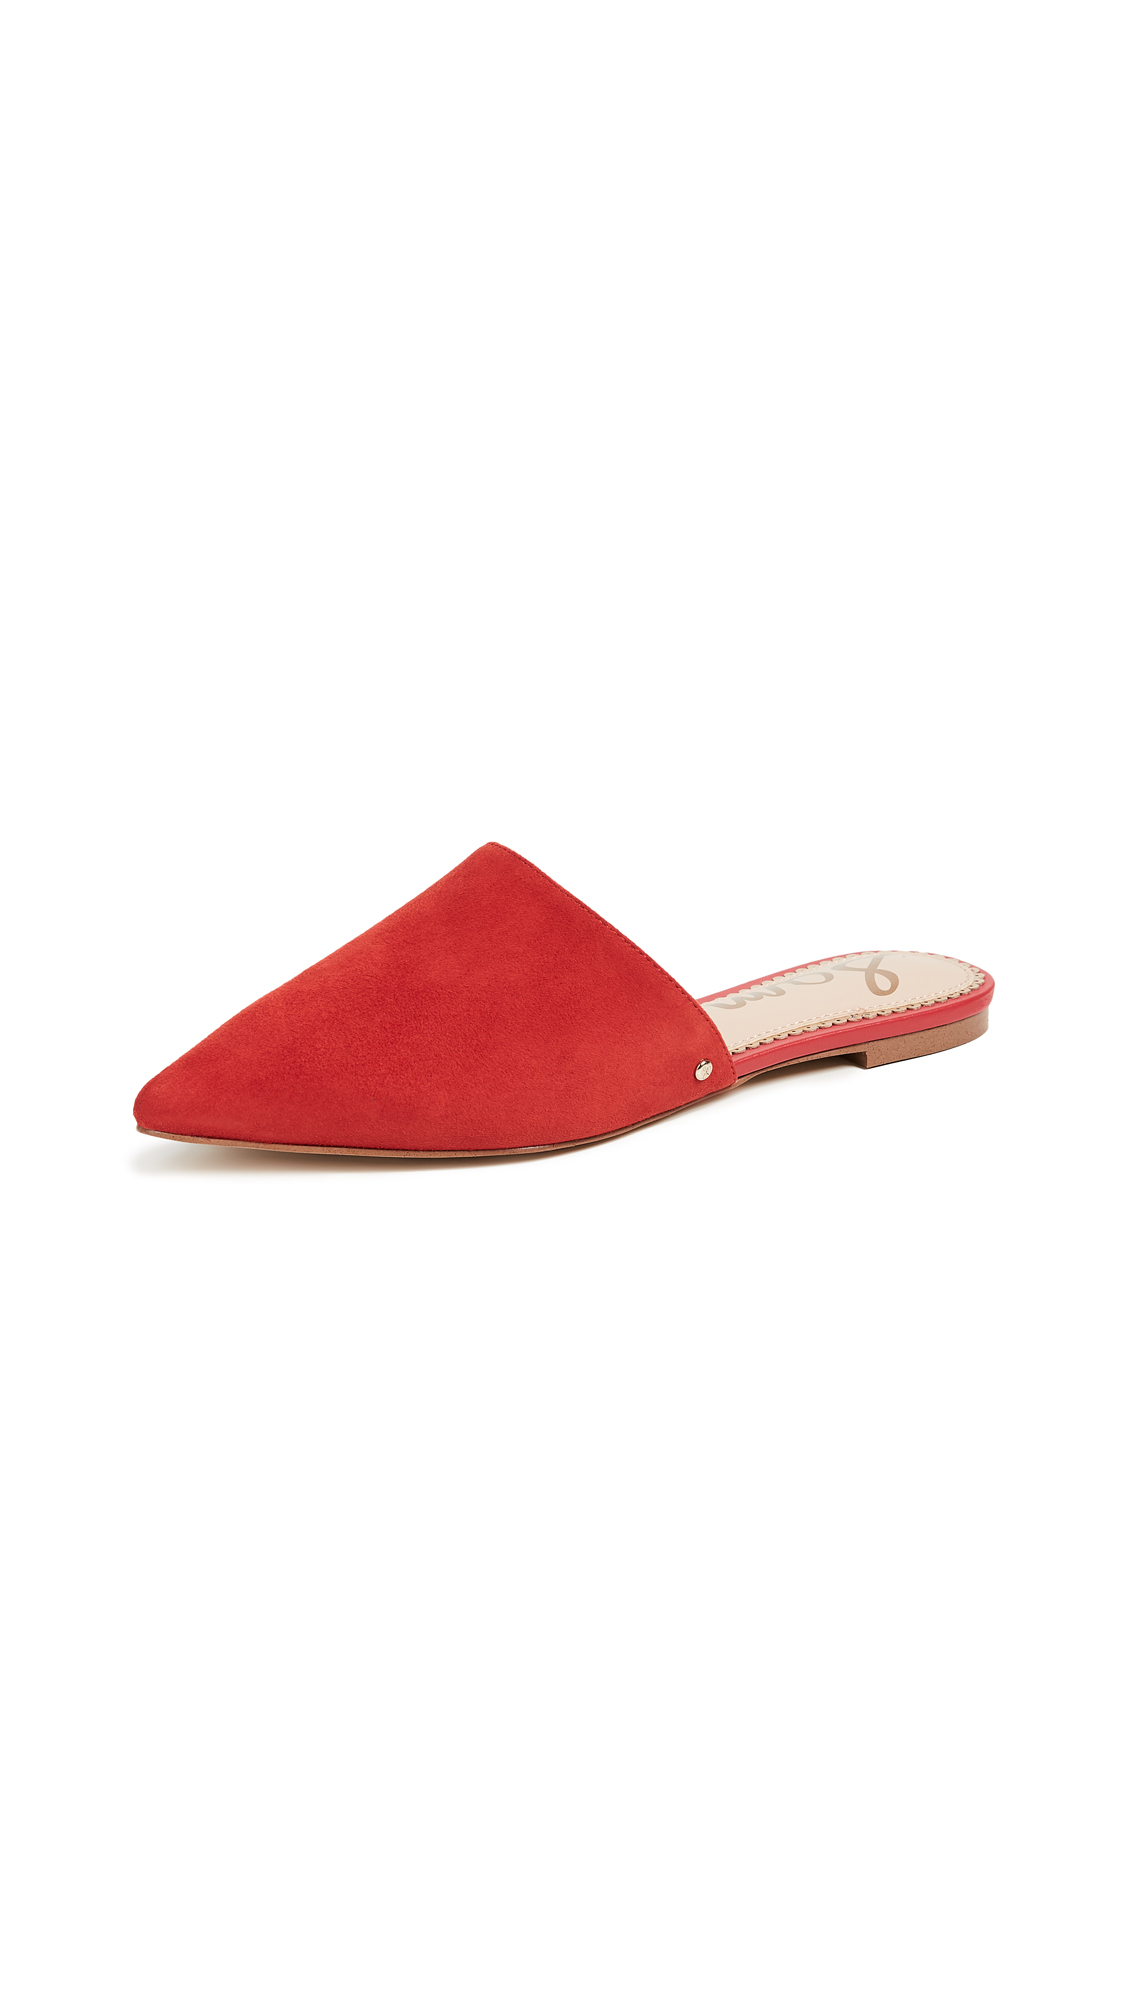 Sam Edelman Rumi Mules - Candy Red